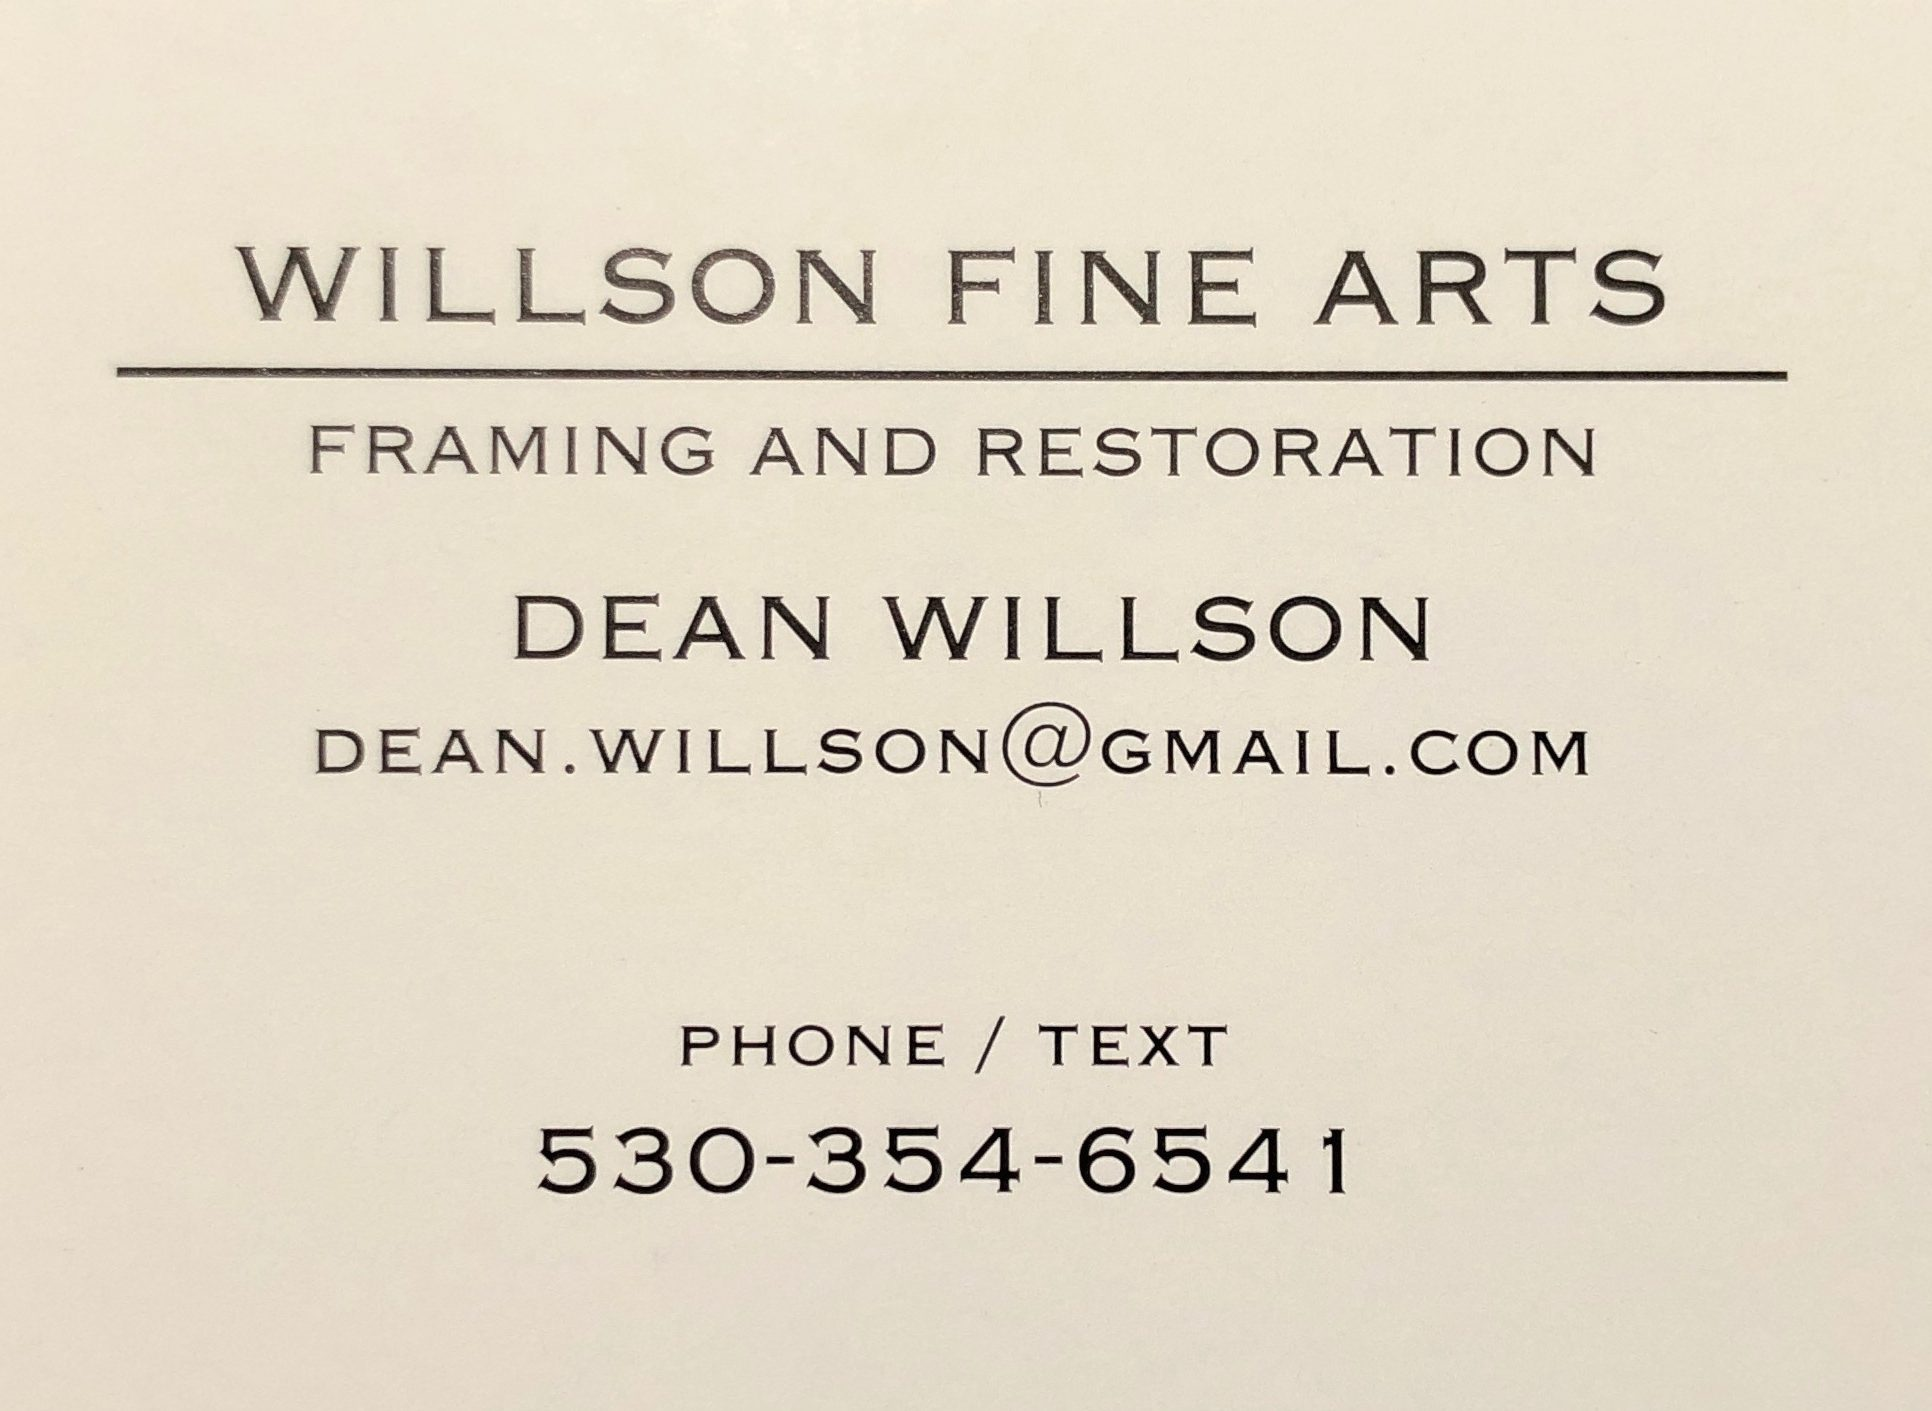 Dean Willson Fine Arts